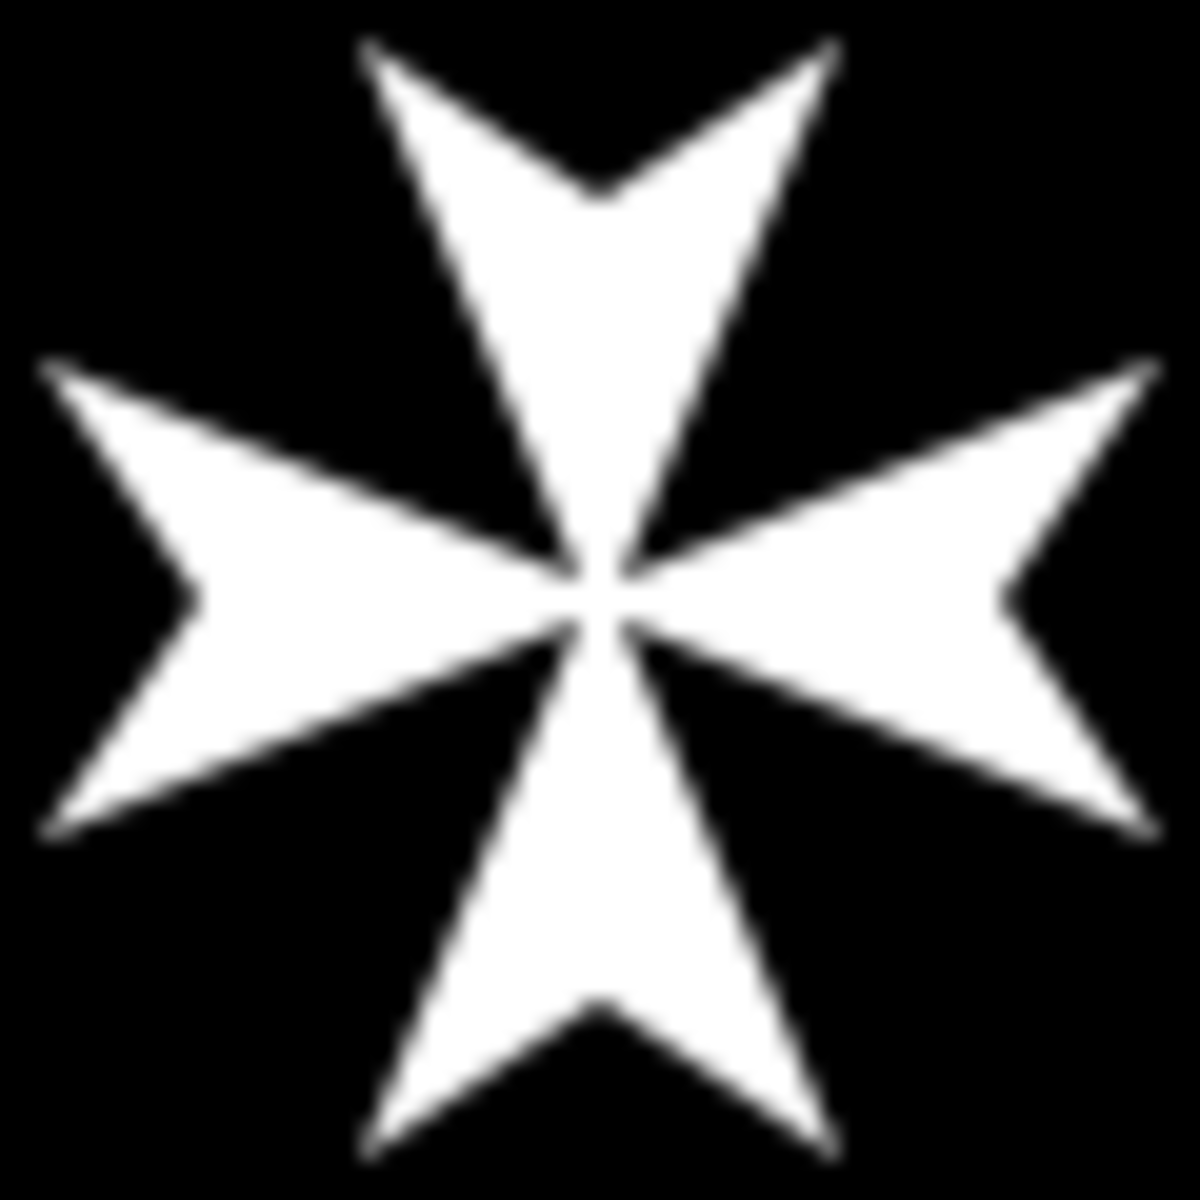 The equally famous emblem of the Knights Hospitaller.